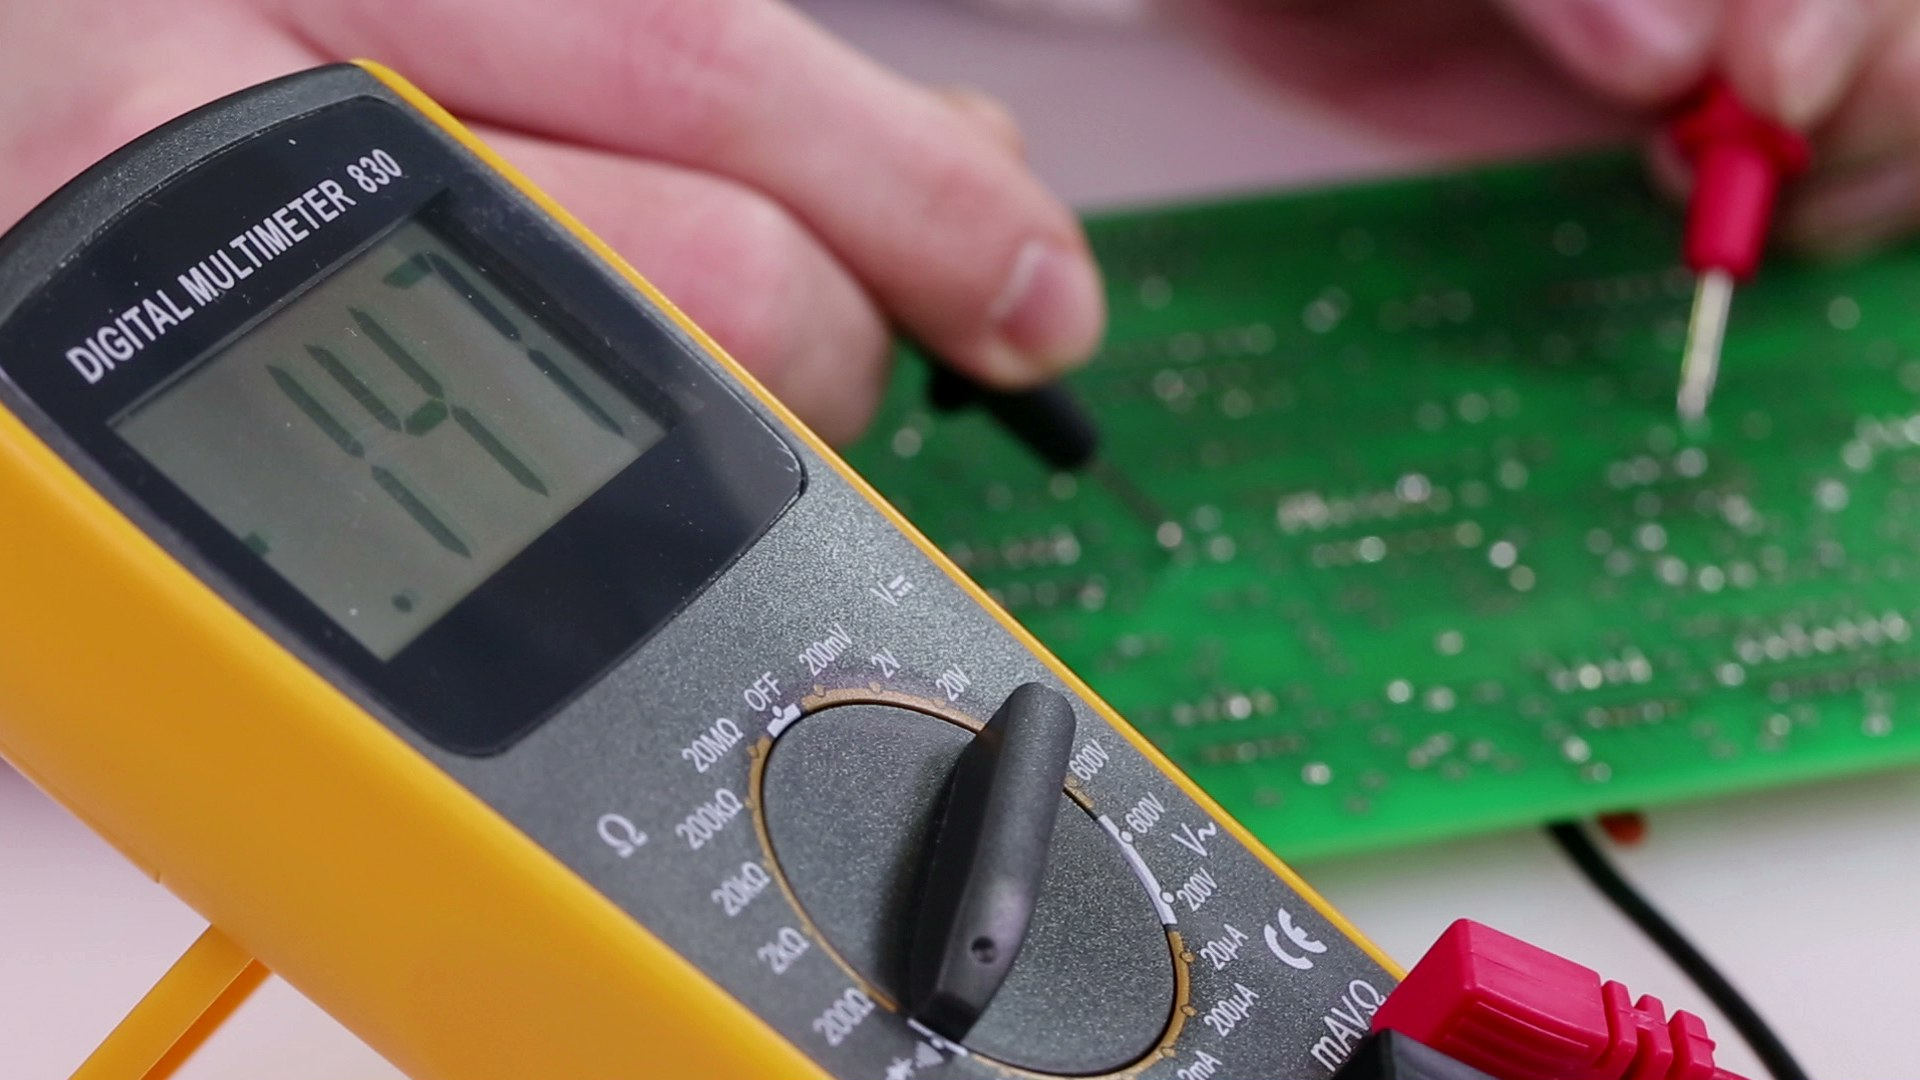 projects_Collin's_Lab_-_Multimeters-1.jpeg